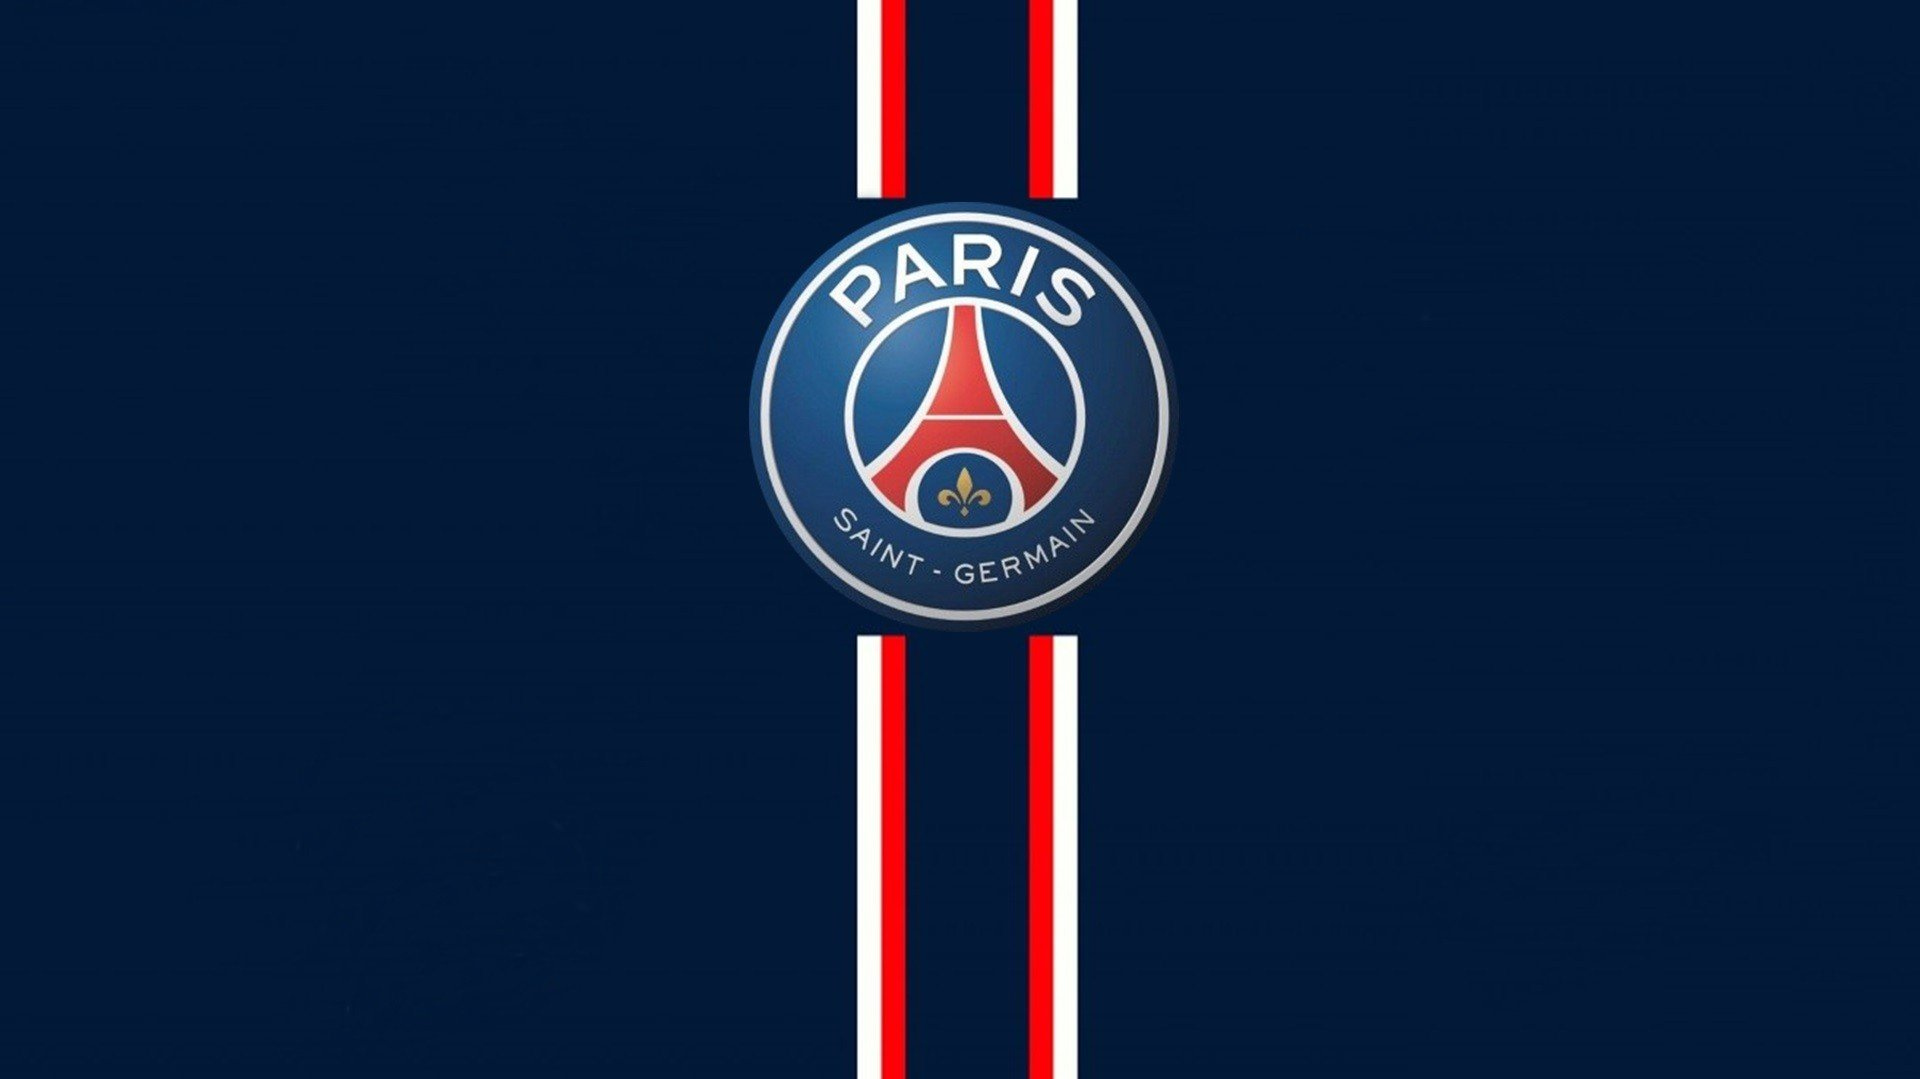 1920x1079 - Paris Saint-Germain F.C. Wallpapers 14